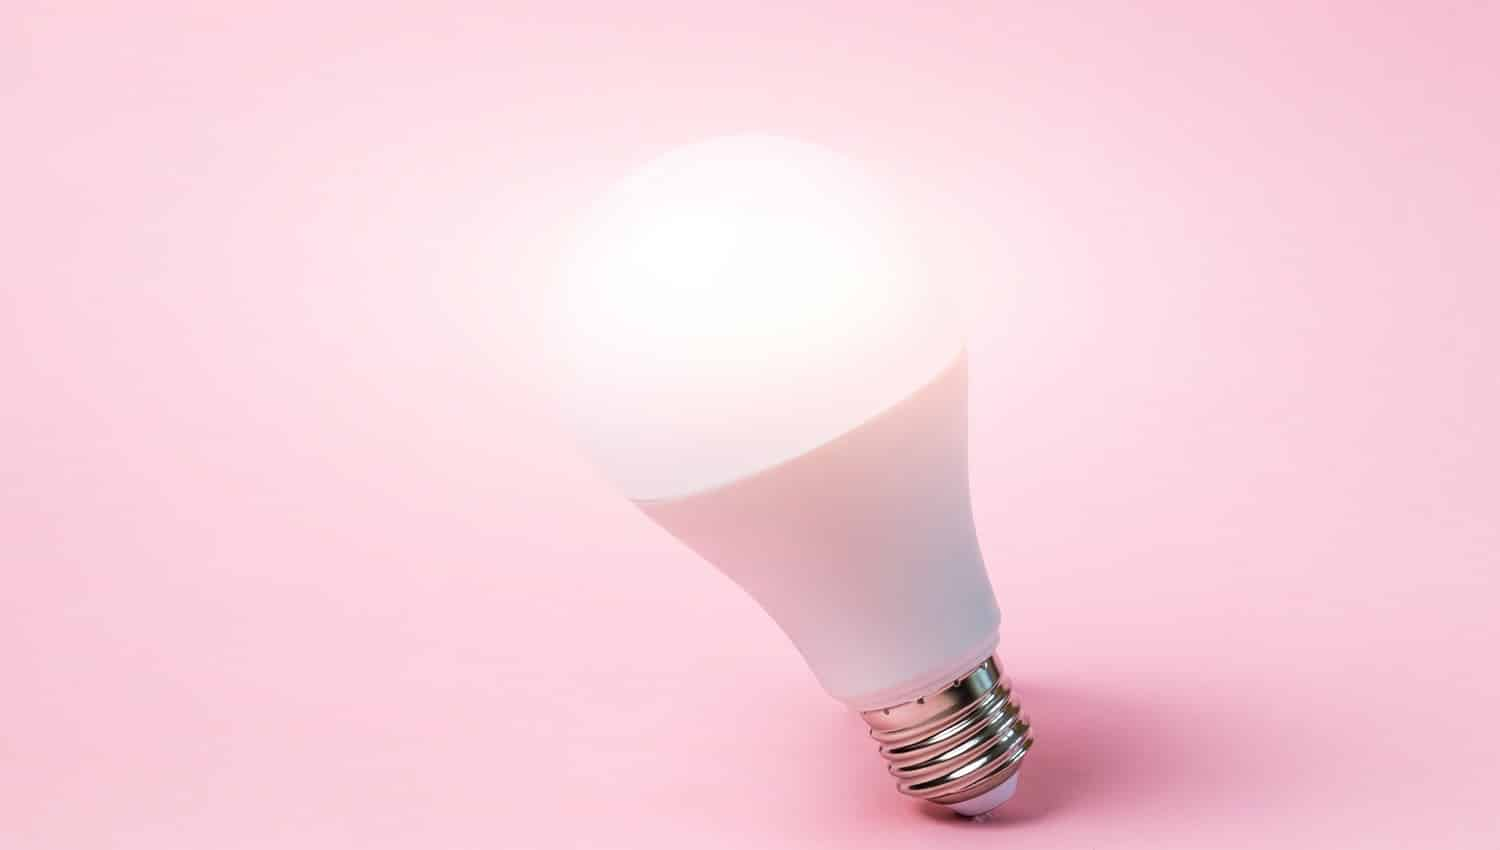 LED light bulb stands on a pastel pink background. Light from the lamp. Concept of idea. Minimalism, place for text.